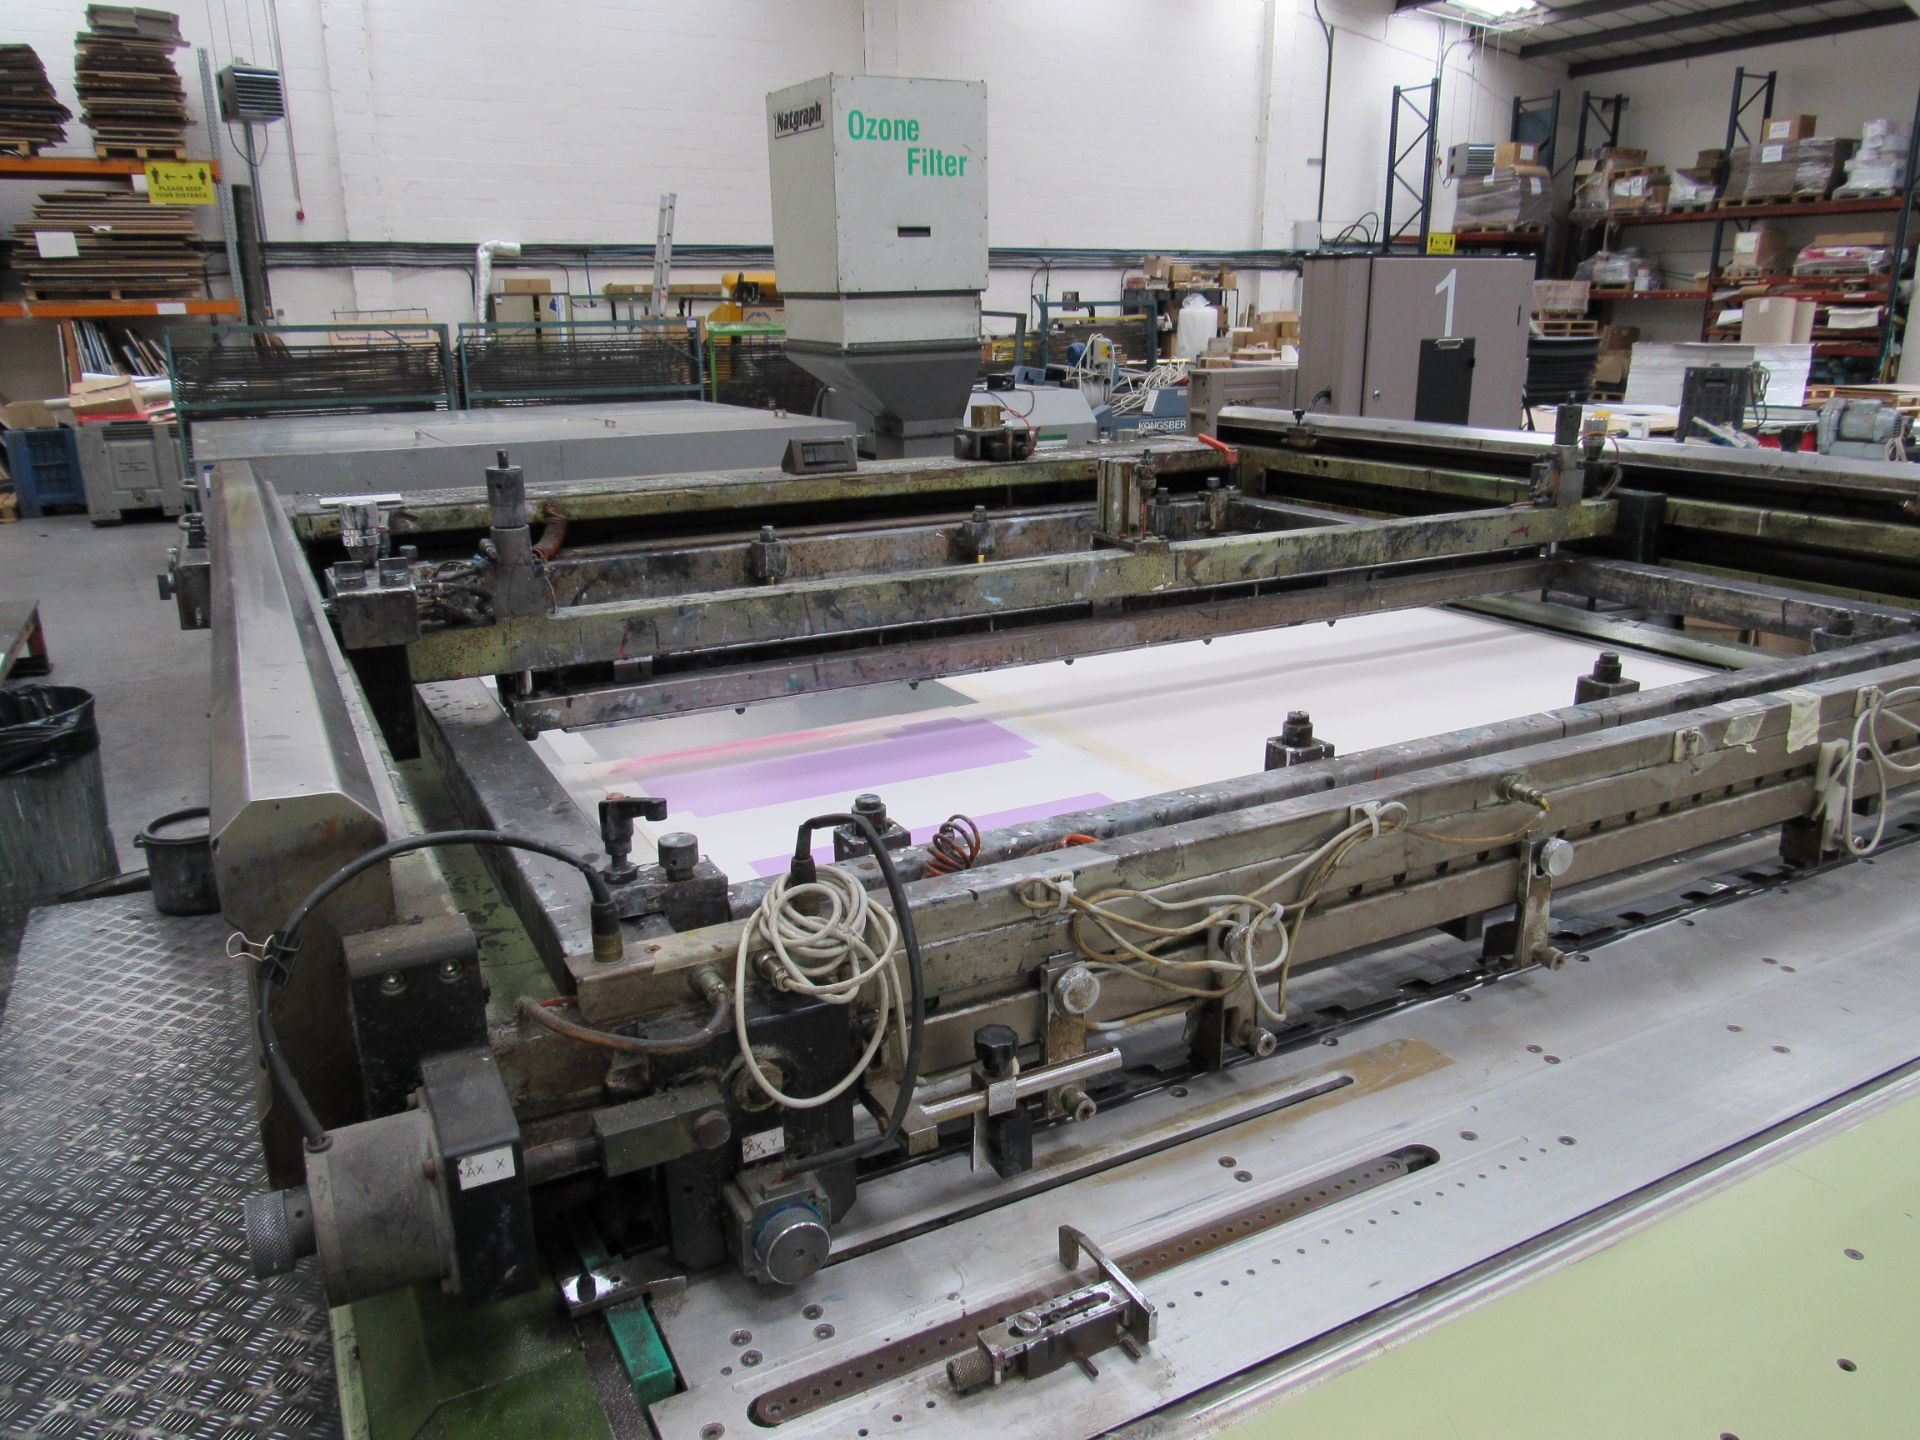 Serfast Screen Printer with Natgraph 170-02.01 UV Dryer, Serial Number 337-02-04, 2002 - Image 3 of 13